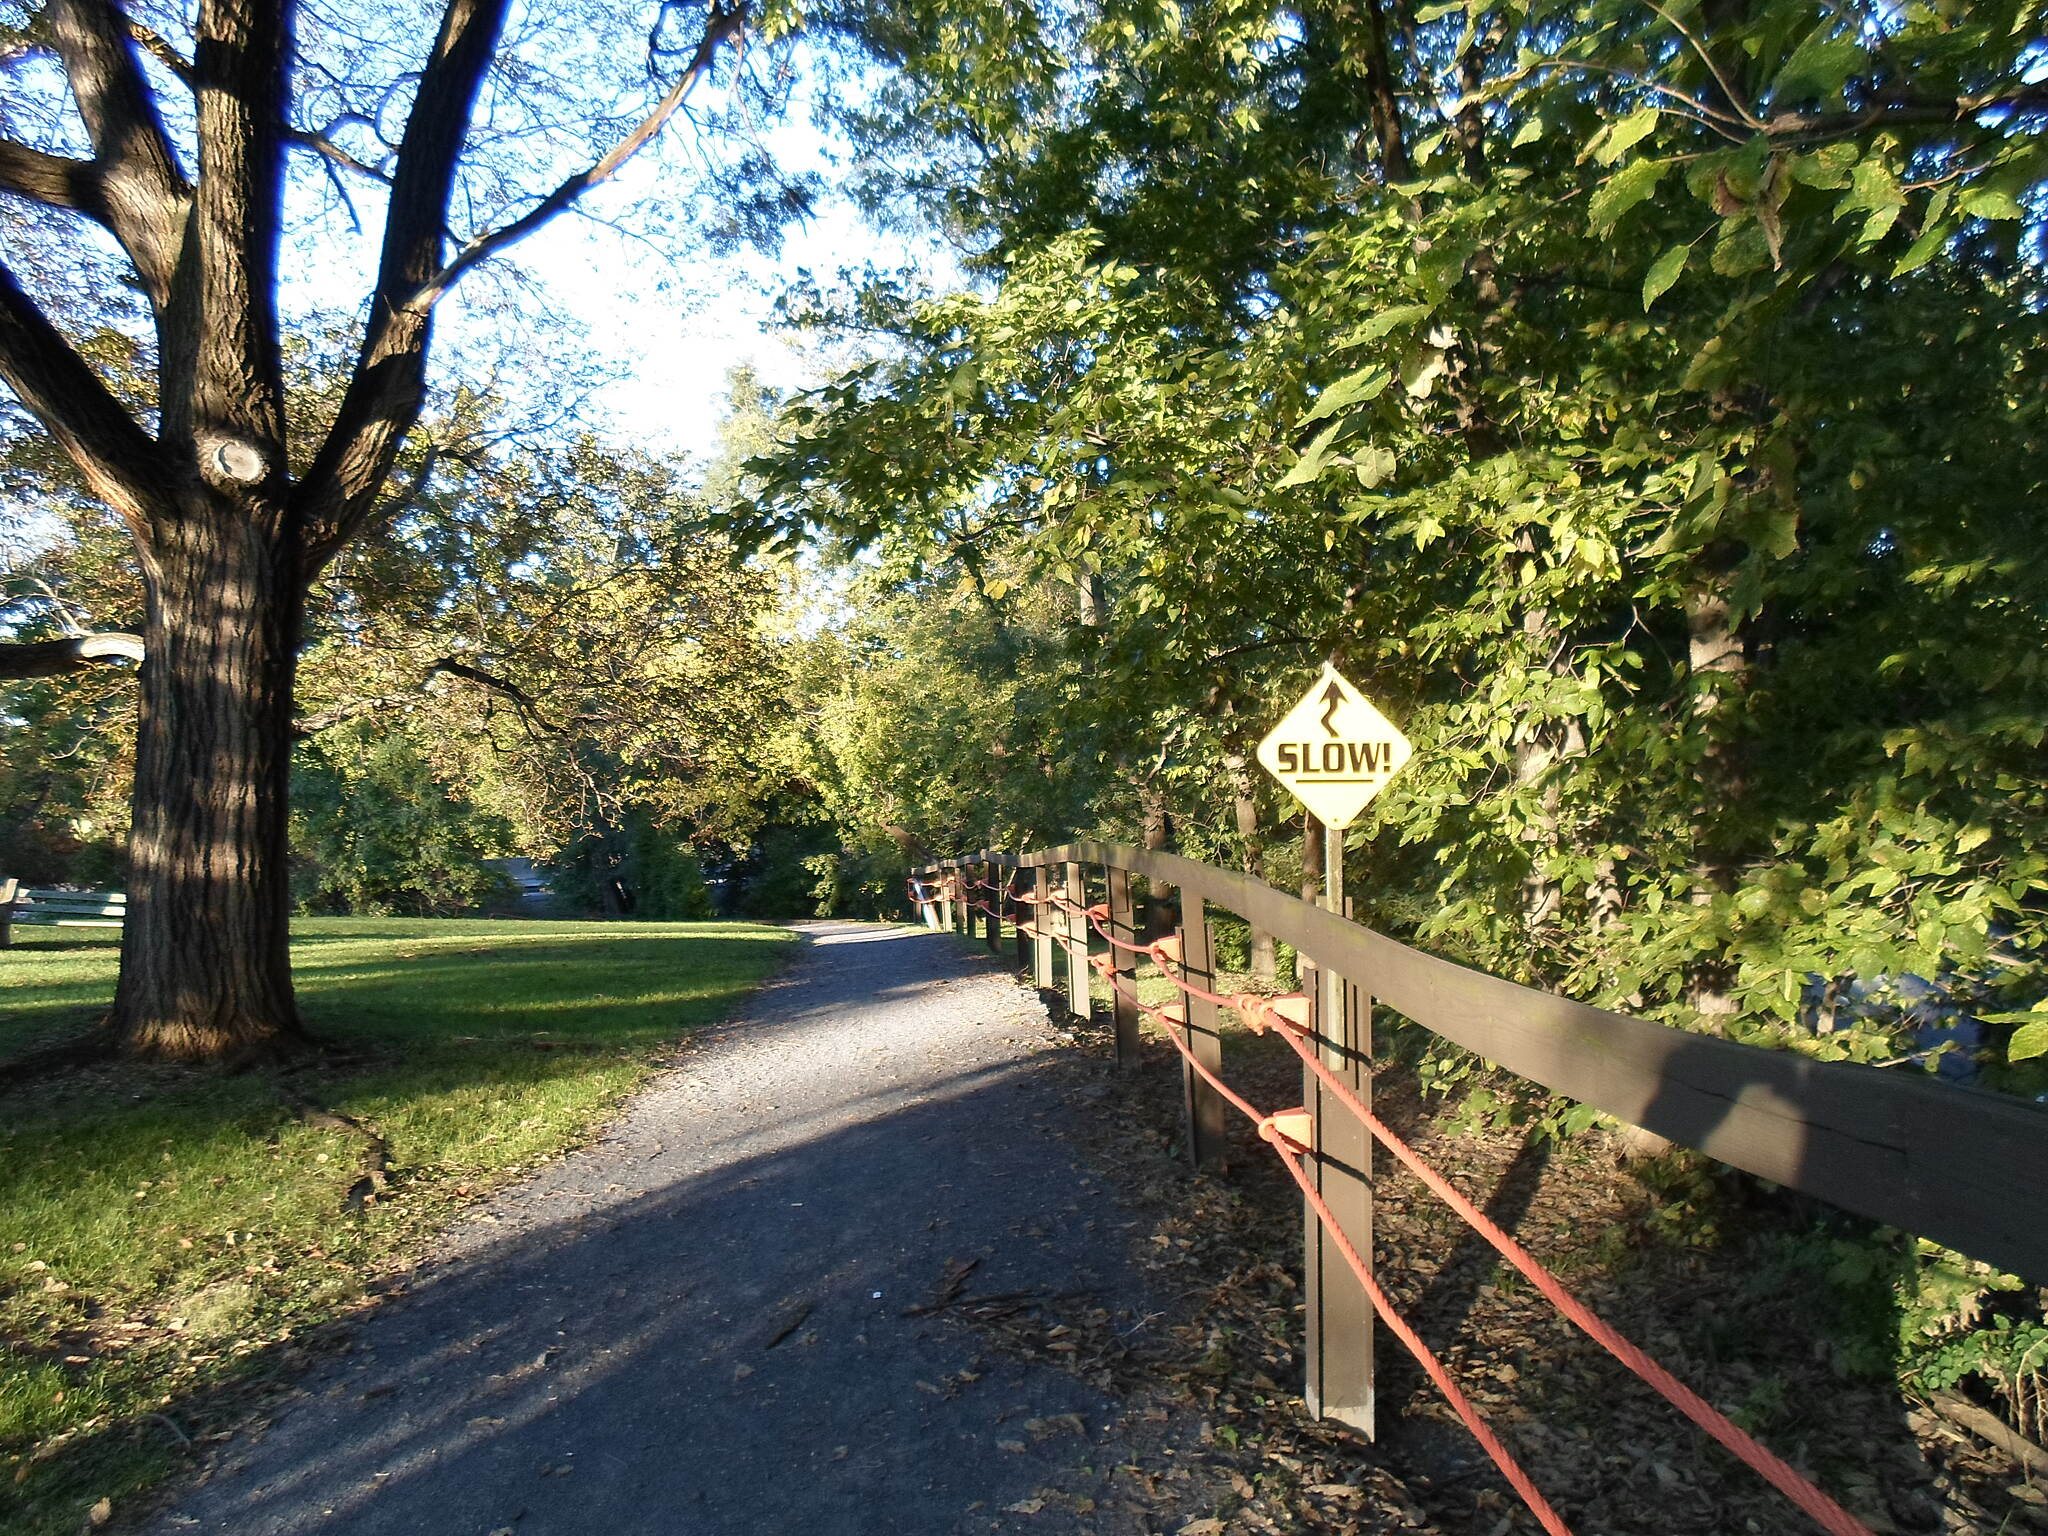 Capital Area Greenbelt Capital Area Greenbelt Sign warning users of the sharp curves on the northeast end of the Rutherford House property, where the trail abruptly turns east onto Spring Creek Bridge.